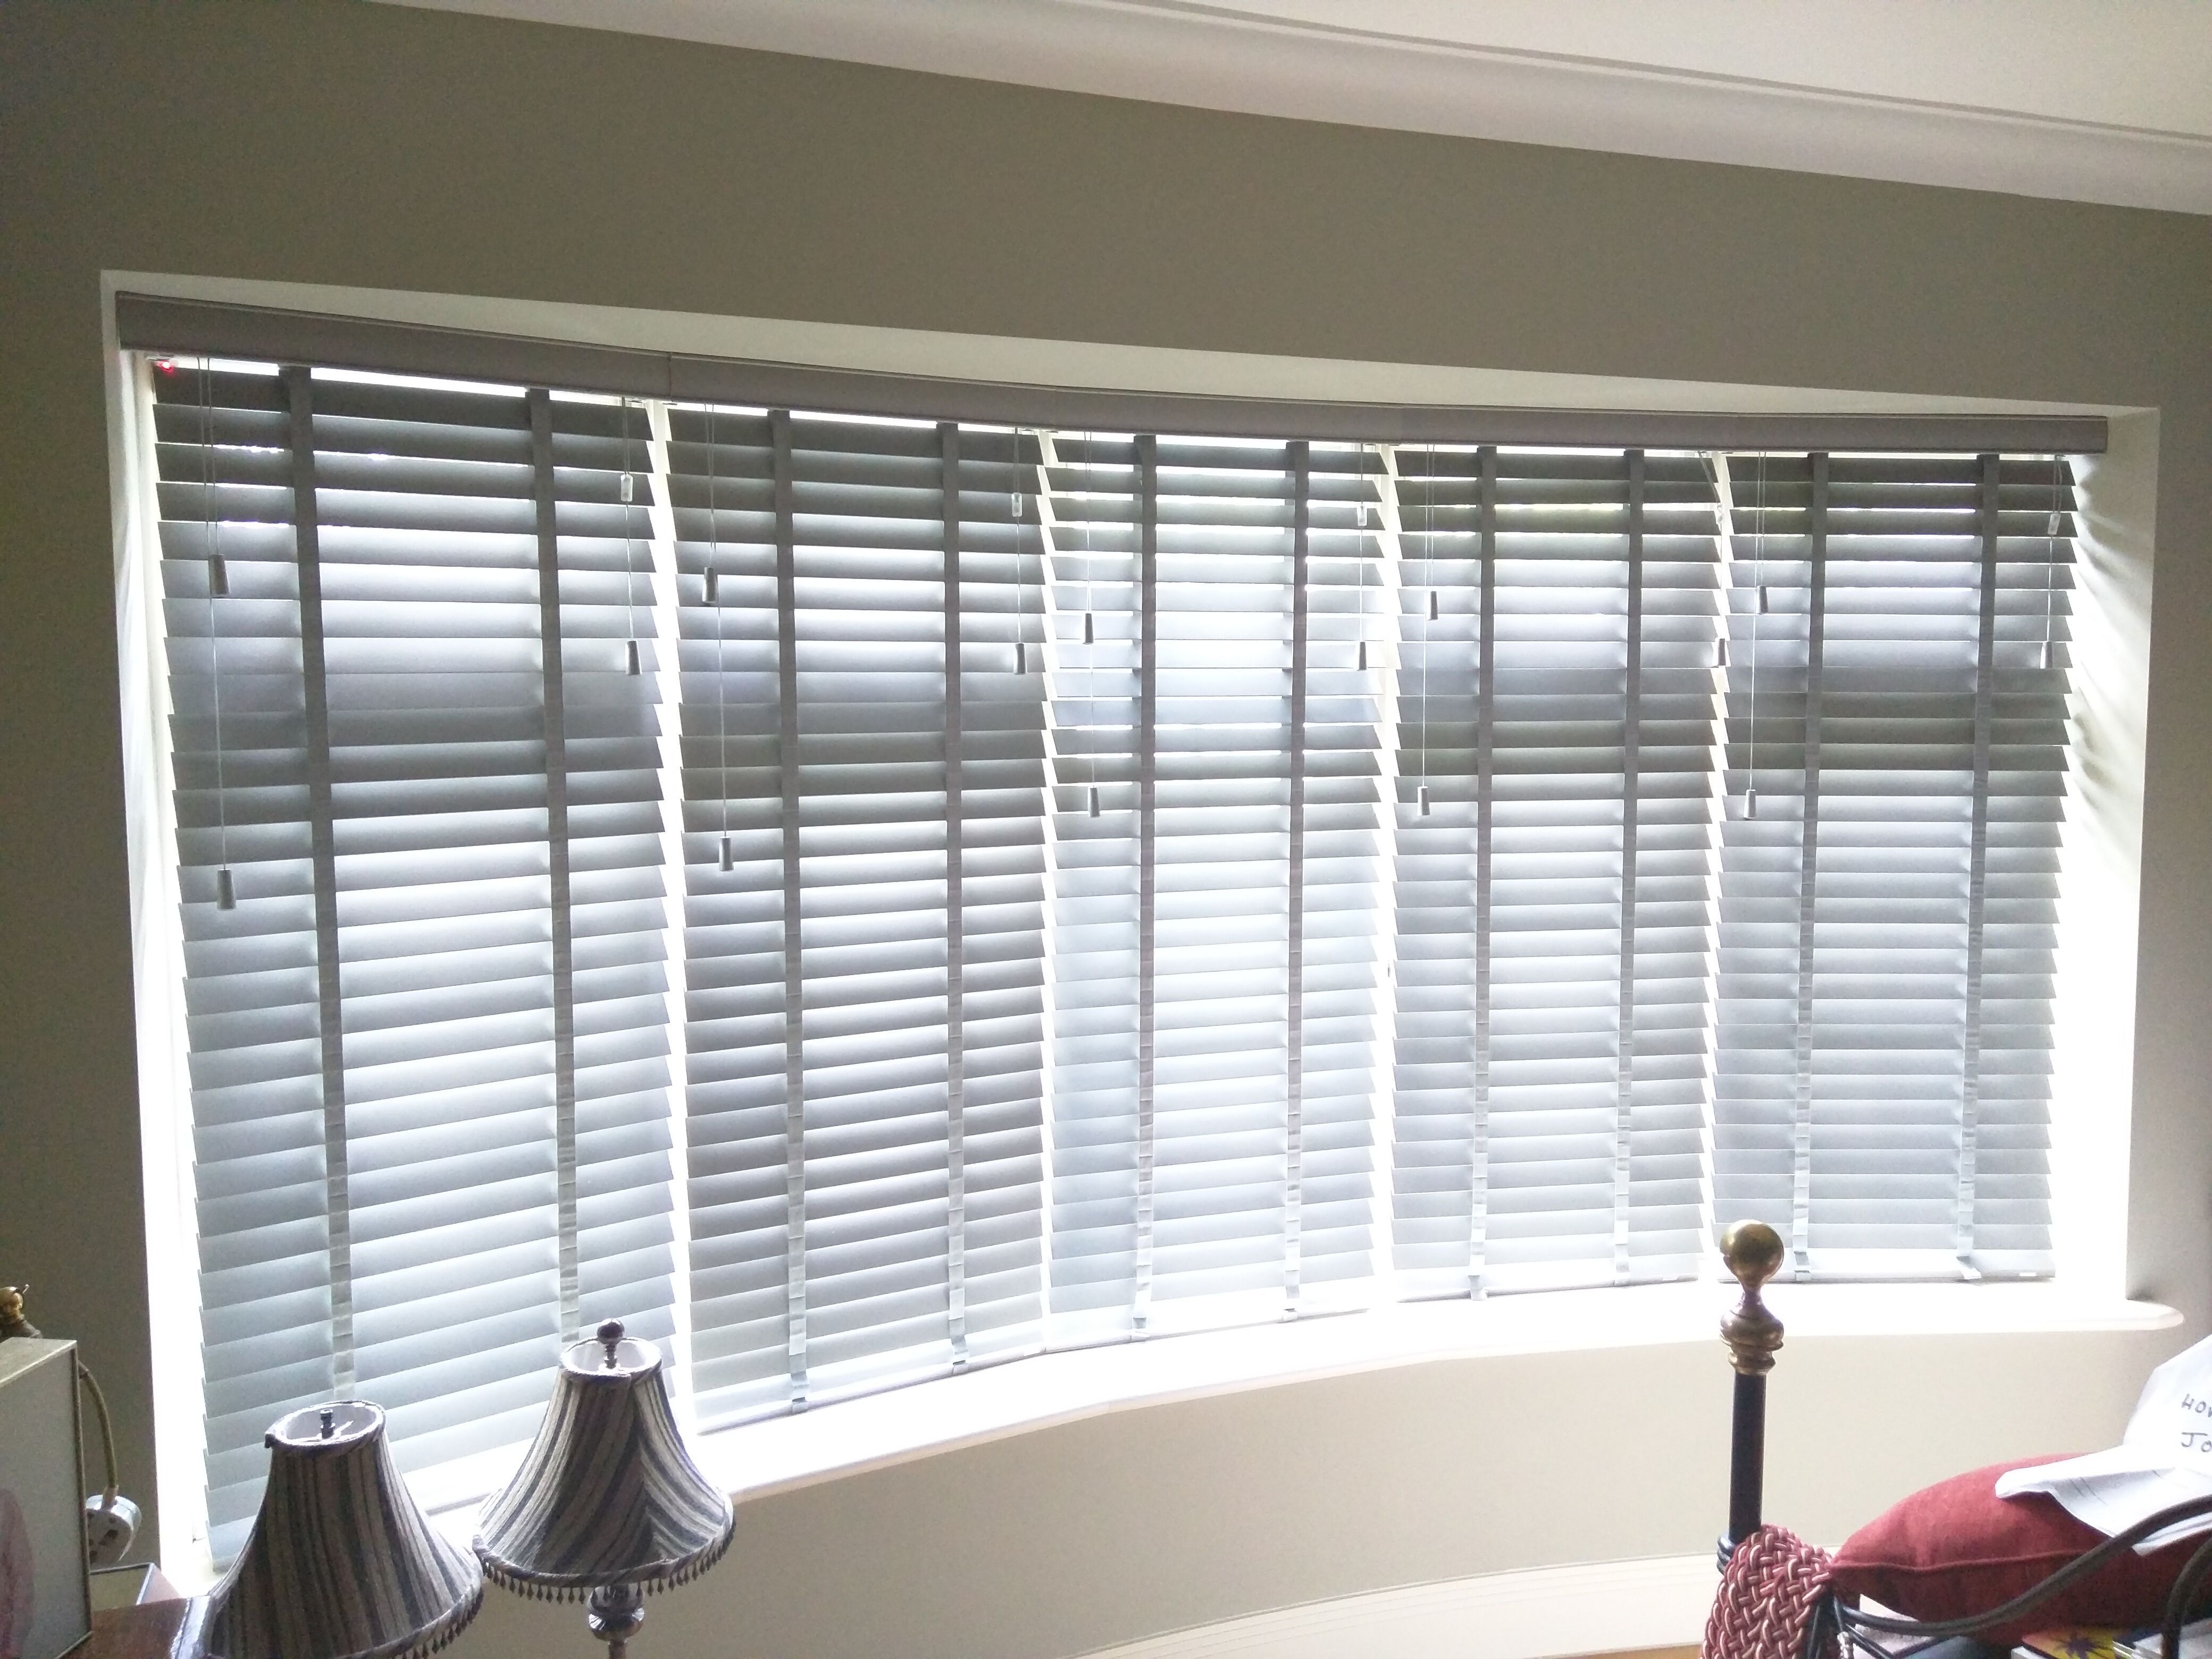 Pottery Wood Venetian Blinds Curved Window Enfield Blinds